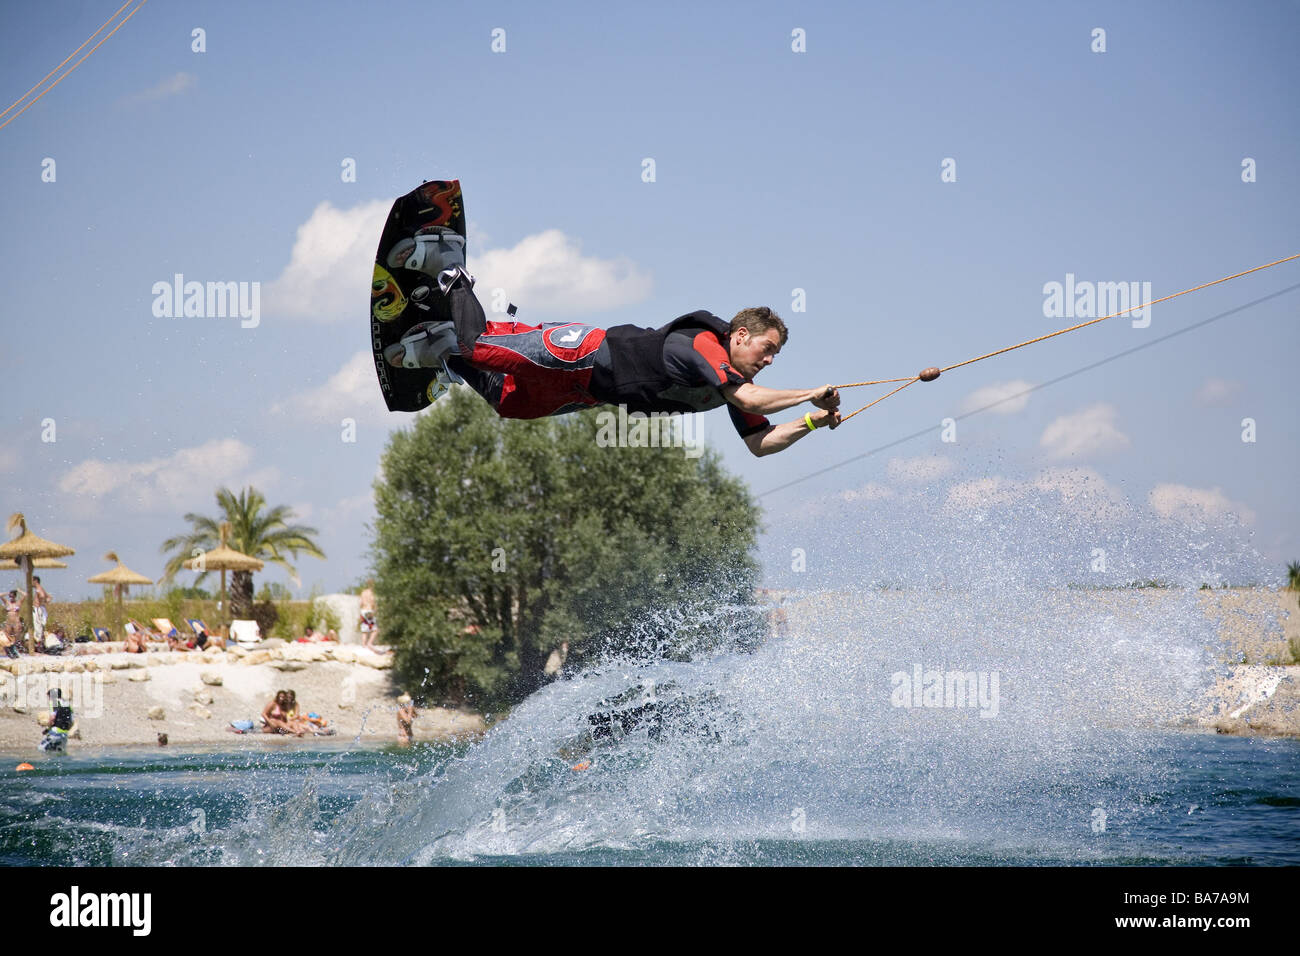 wakeboarder jump people man athletes water athletes wakeboard air jump water sport sport activity fitness dynamics proficiency